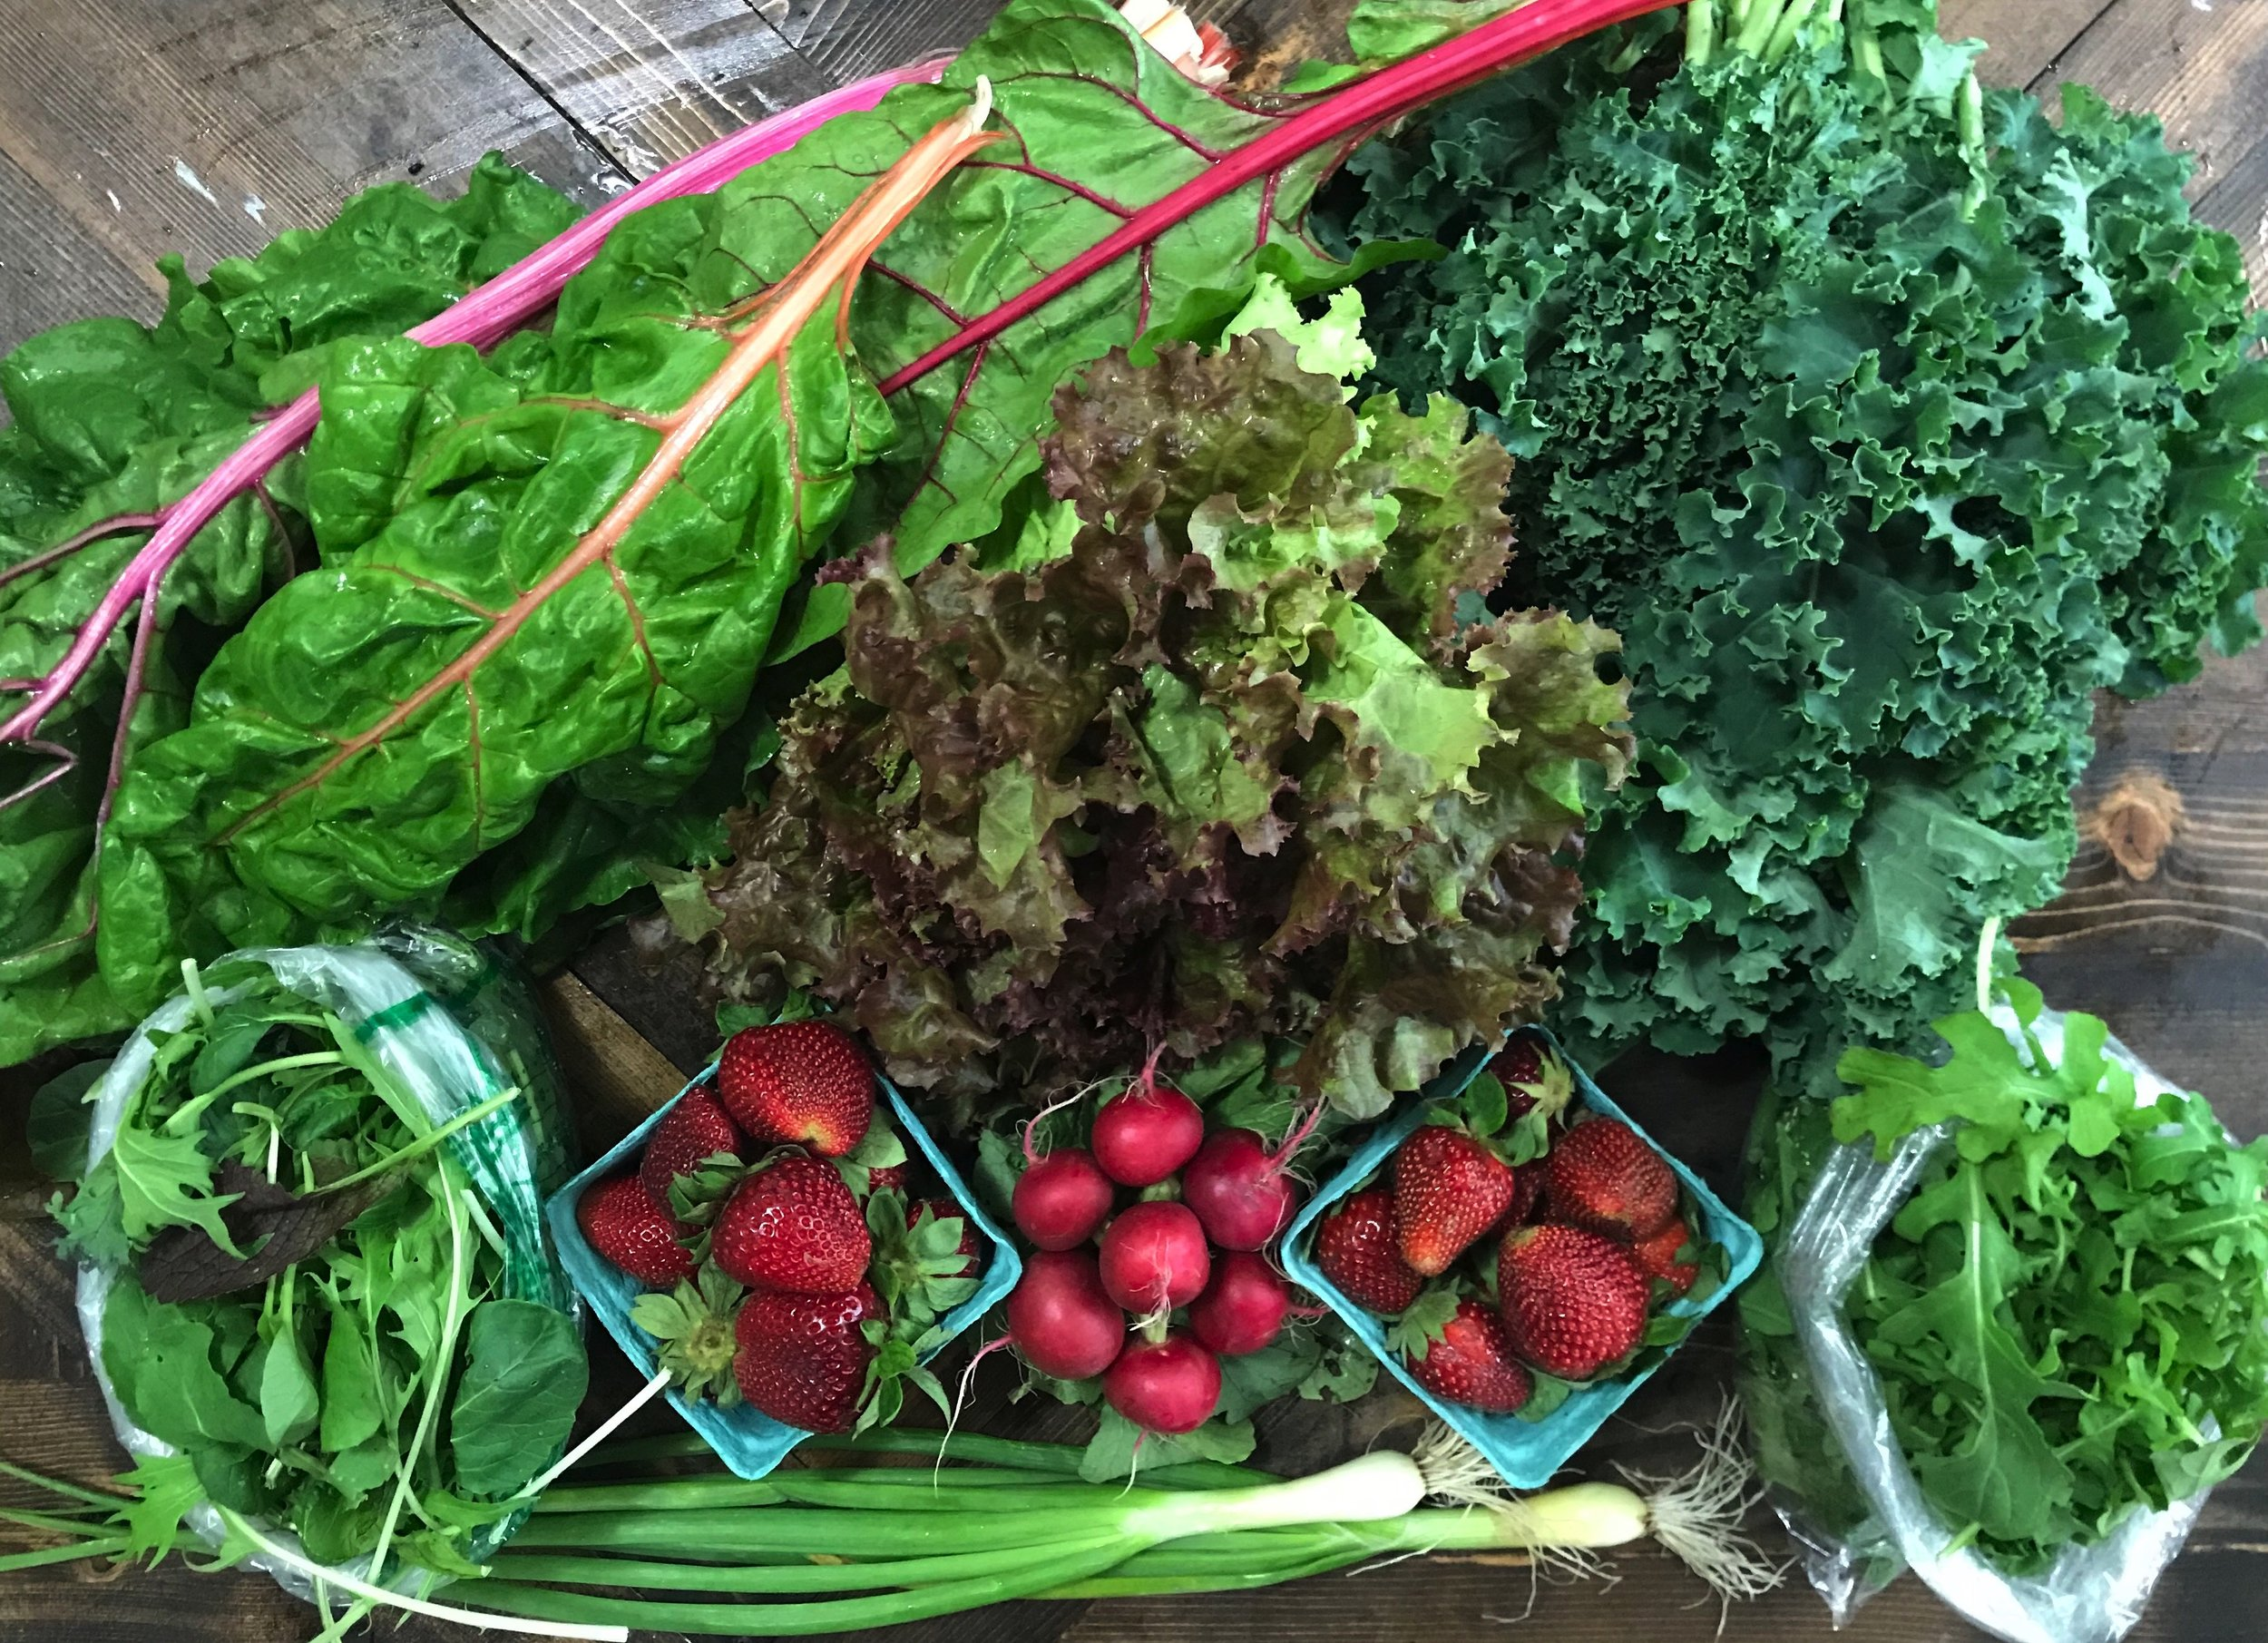 Weekly Share - 1 bunch of chard, 1 head of lettuce, 1 bunch of curly kale, 1 bag of salad mix, 1 bag of arugula, 1 bunch of radishes, 2 pints of strawberries